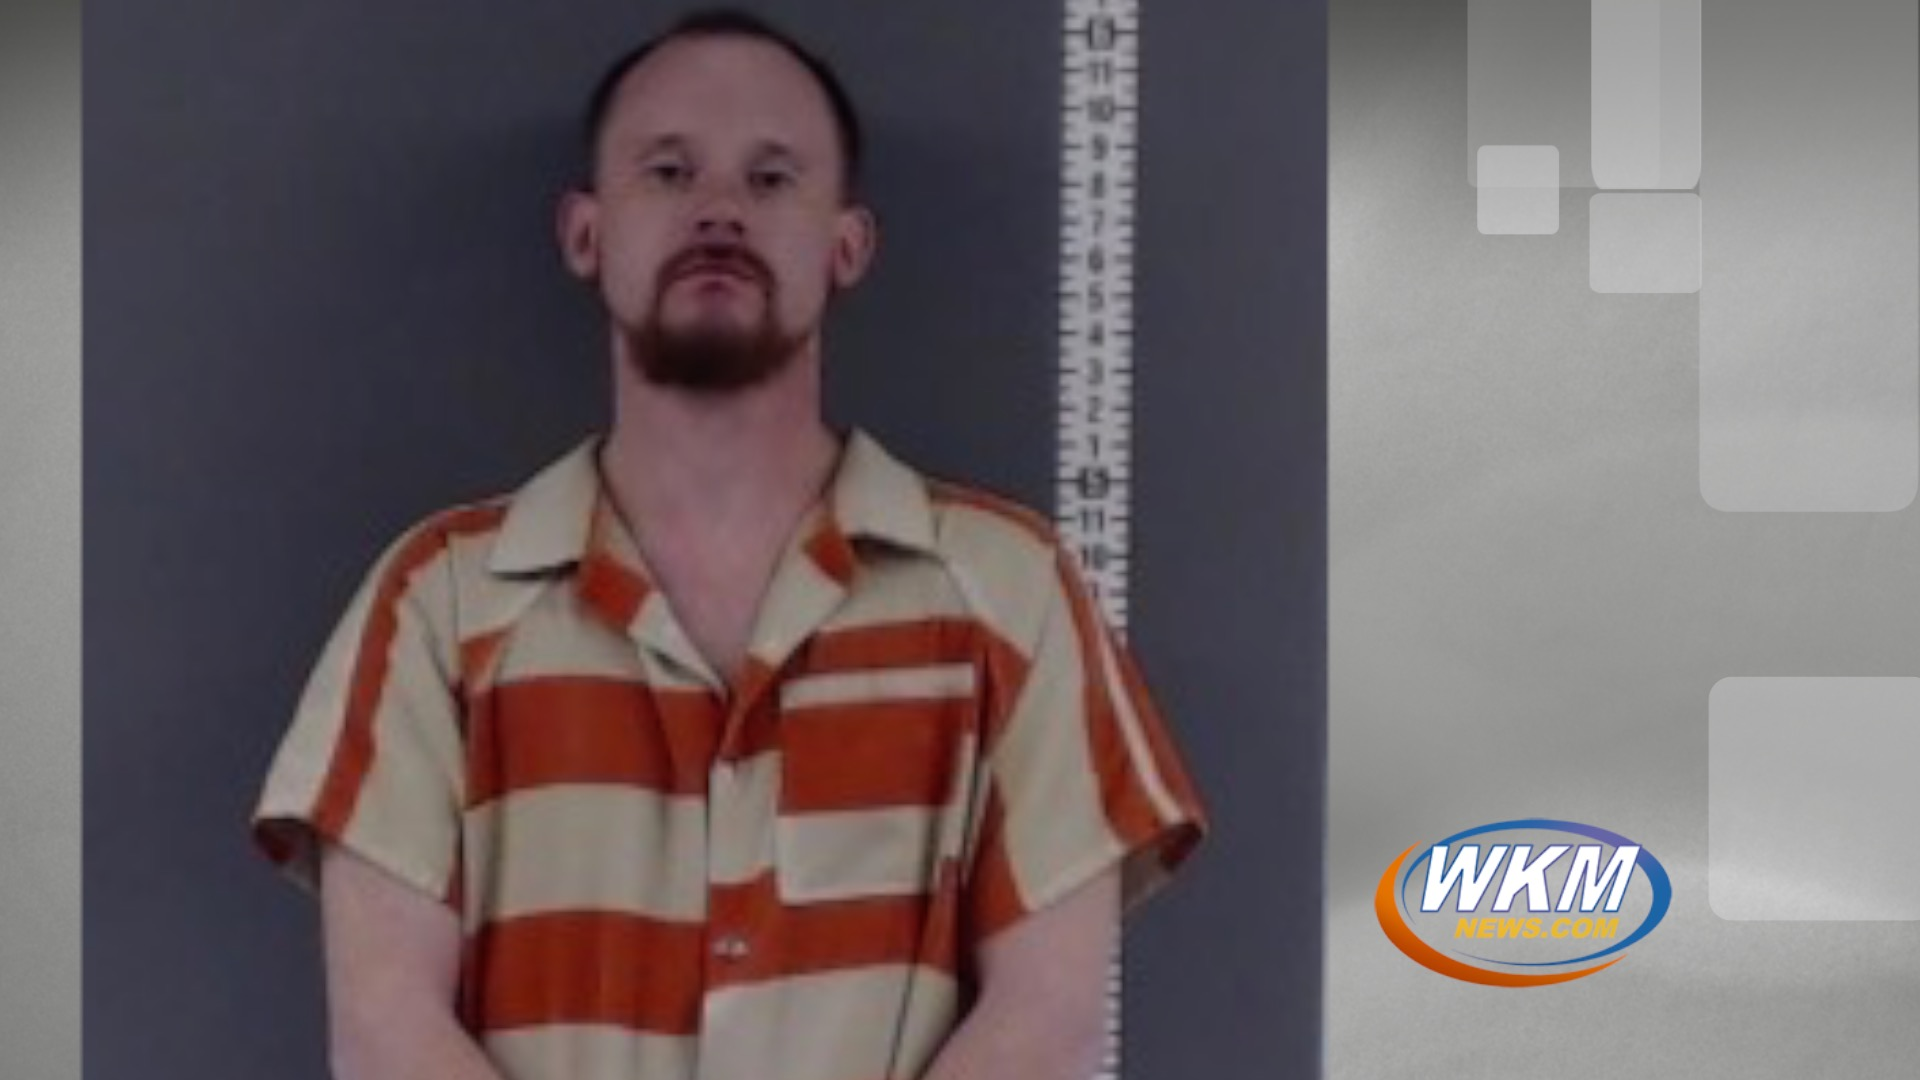 Man Arrested on Domestic Battery and Confinement Charges